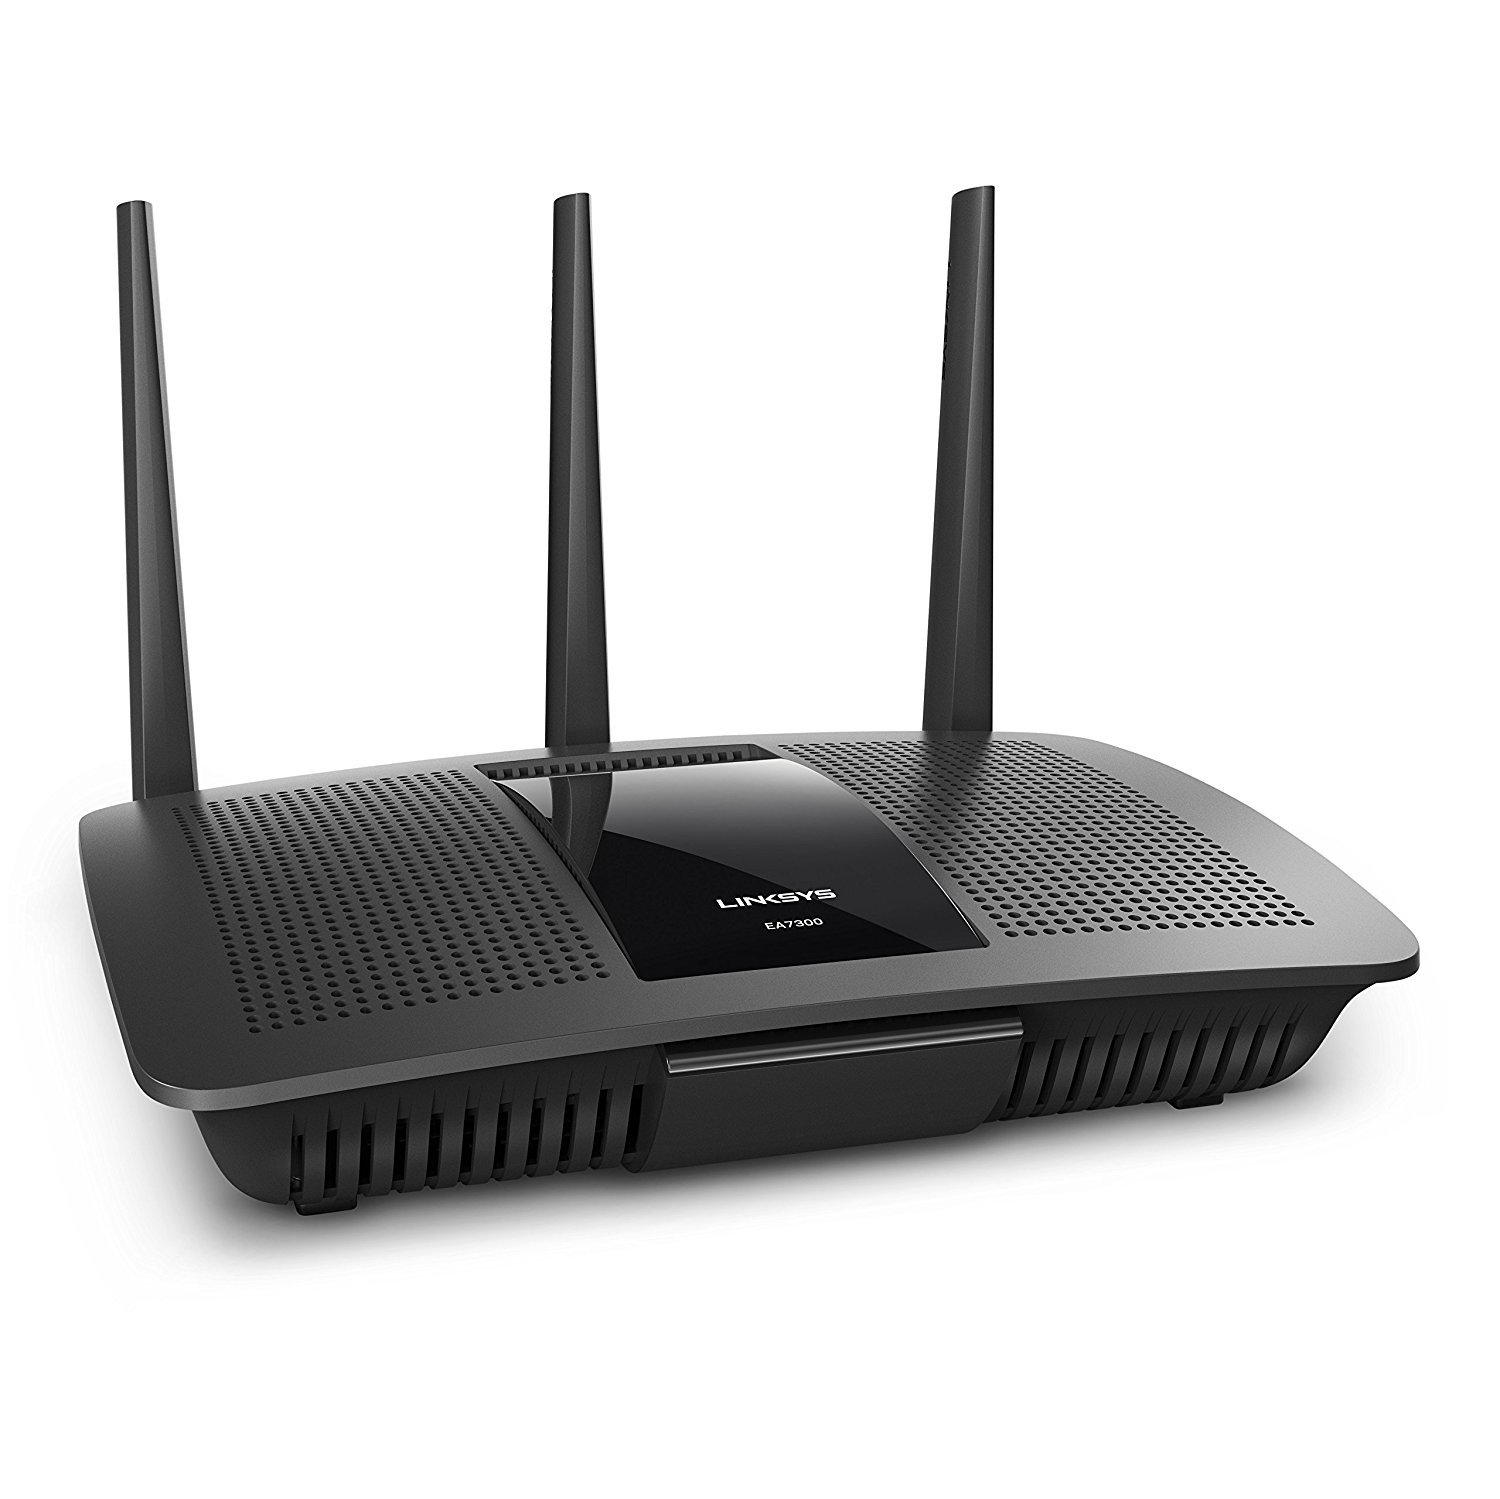 Linksys EA7300-RM AC1750 Dual-Band Smart Wireless Router with MU-MIMO, Works with Amazon A (Renewed) by Linksys